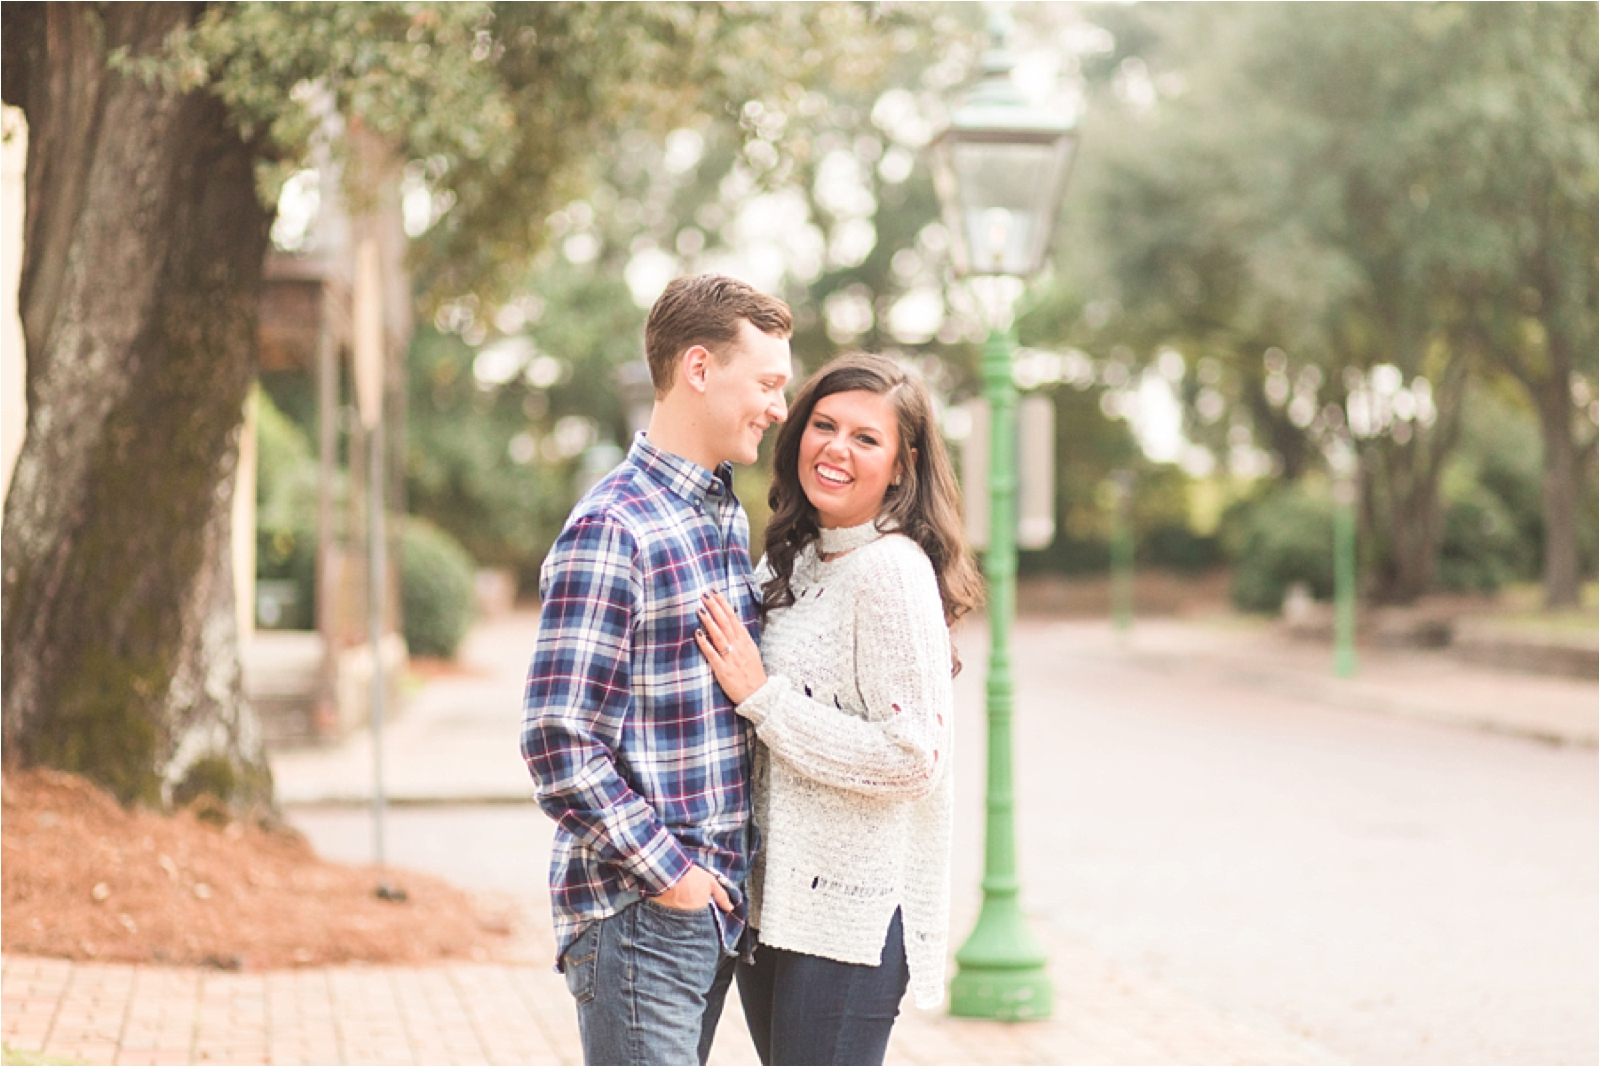 Fort Conde Engagement Session Photographer | Josi + J.R.